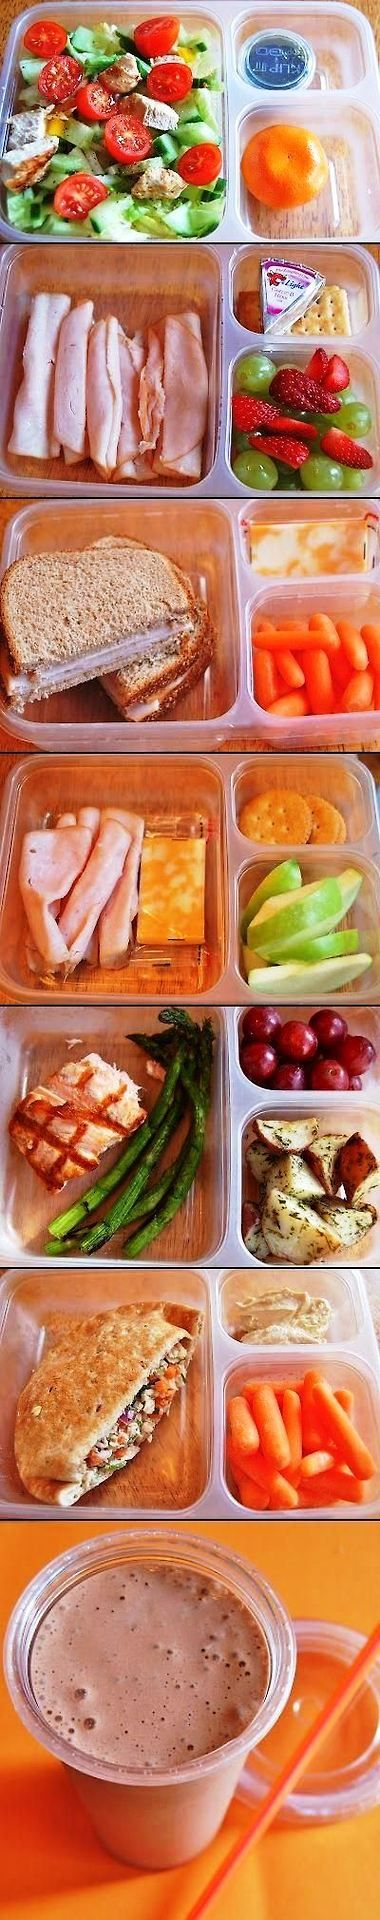 Lunch to take to work and campus. I NEED this tupawear!